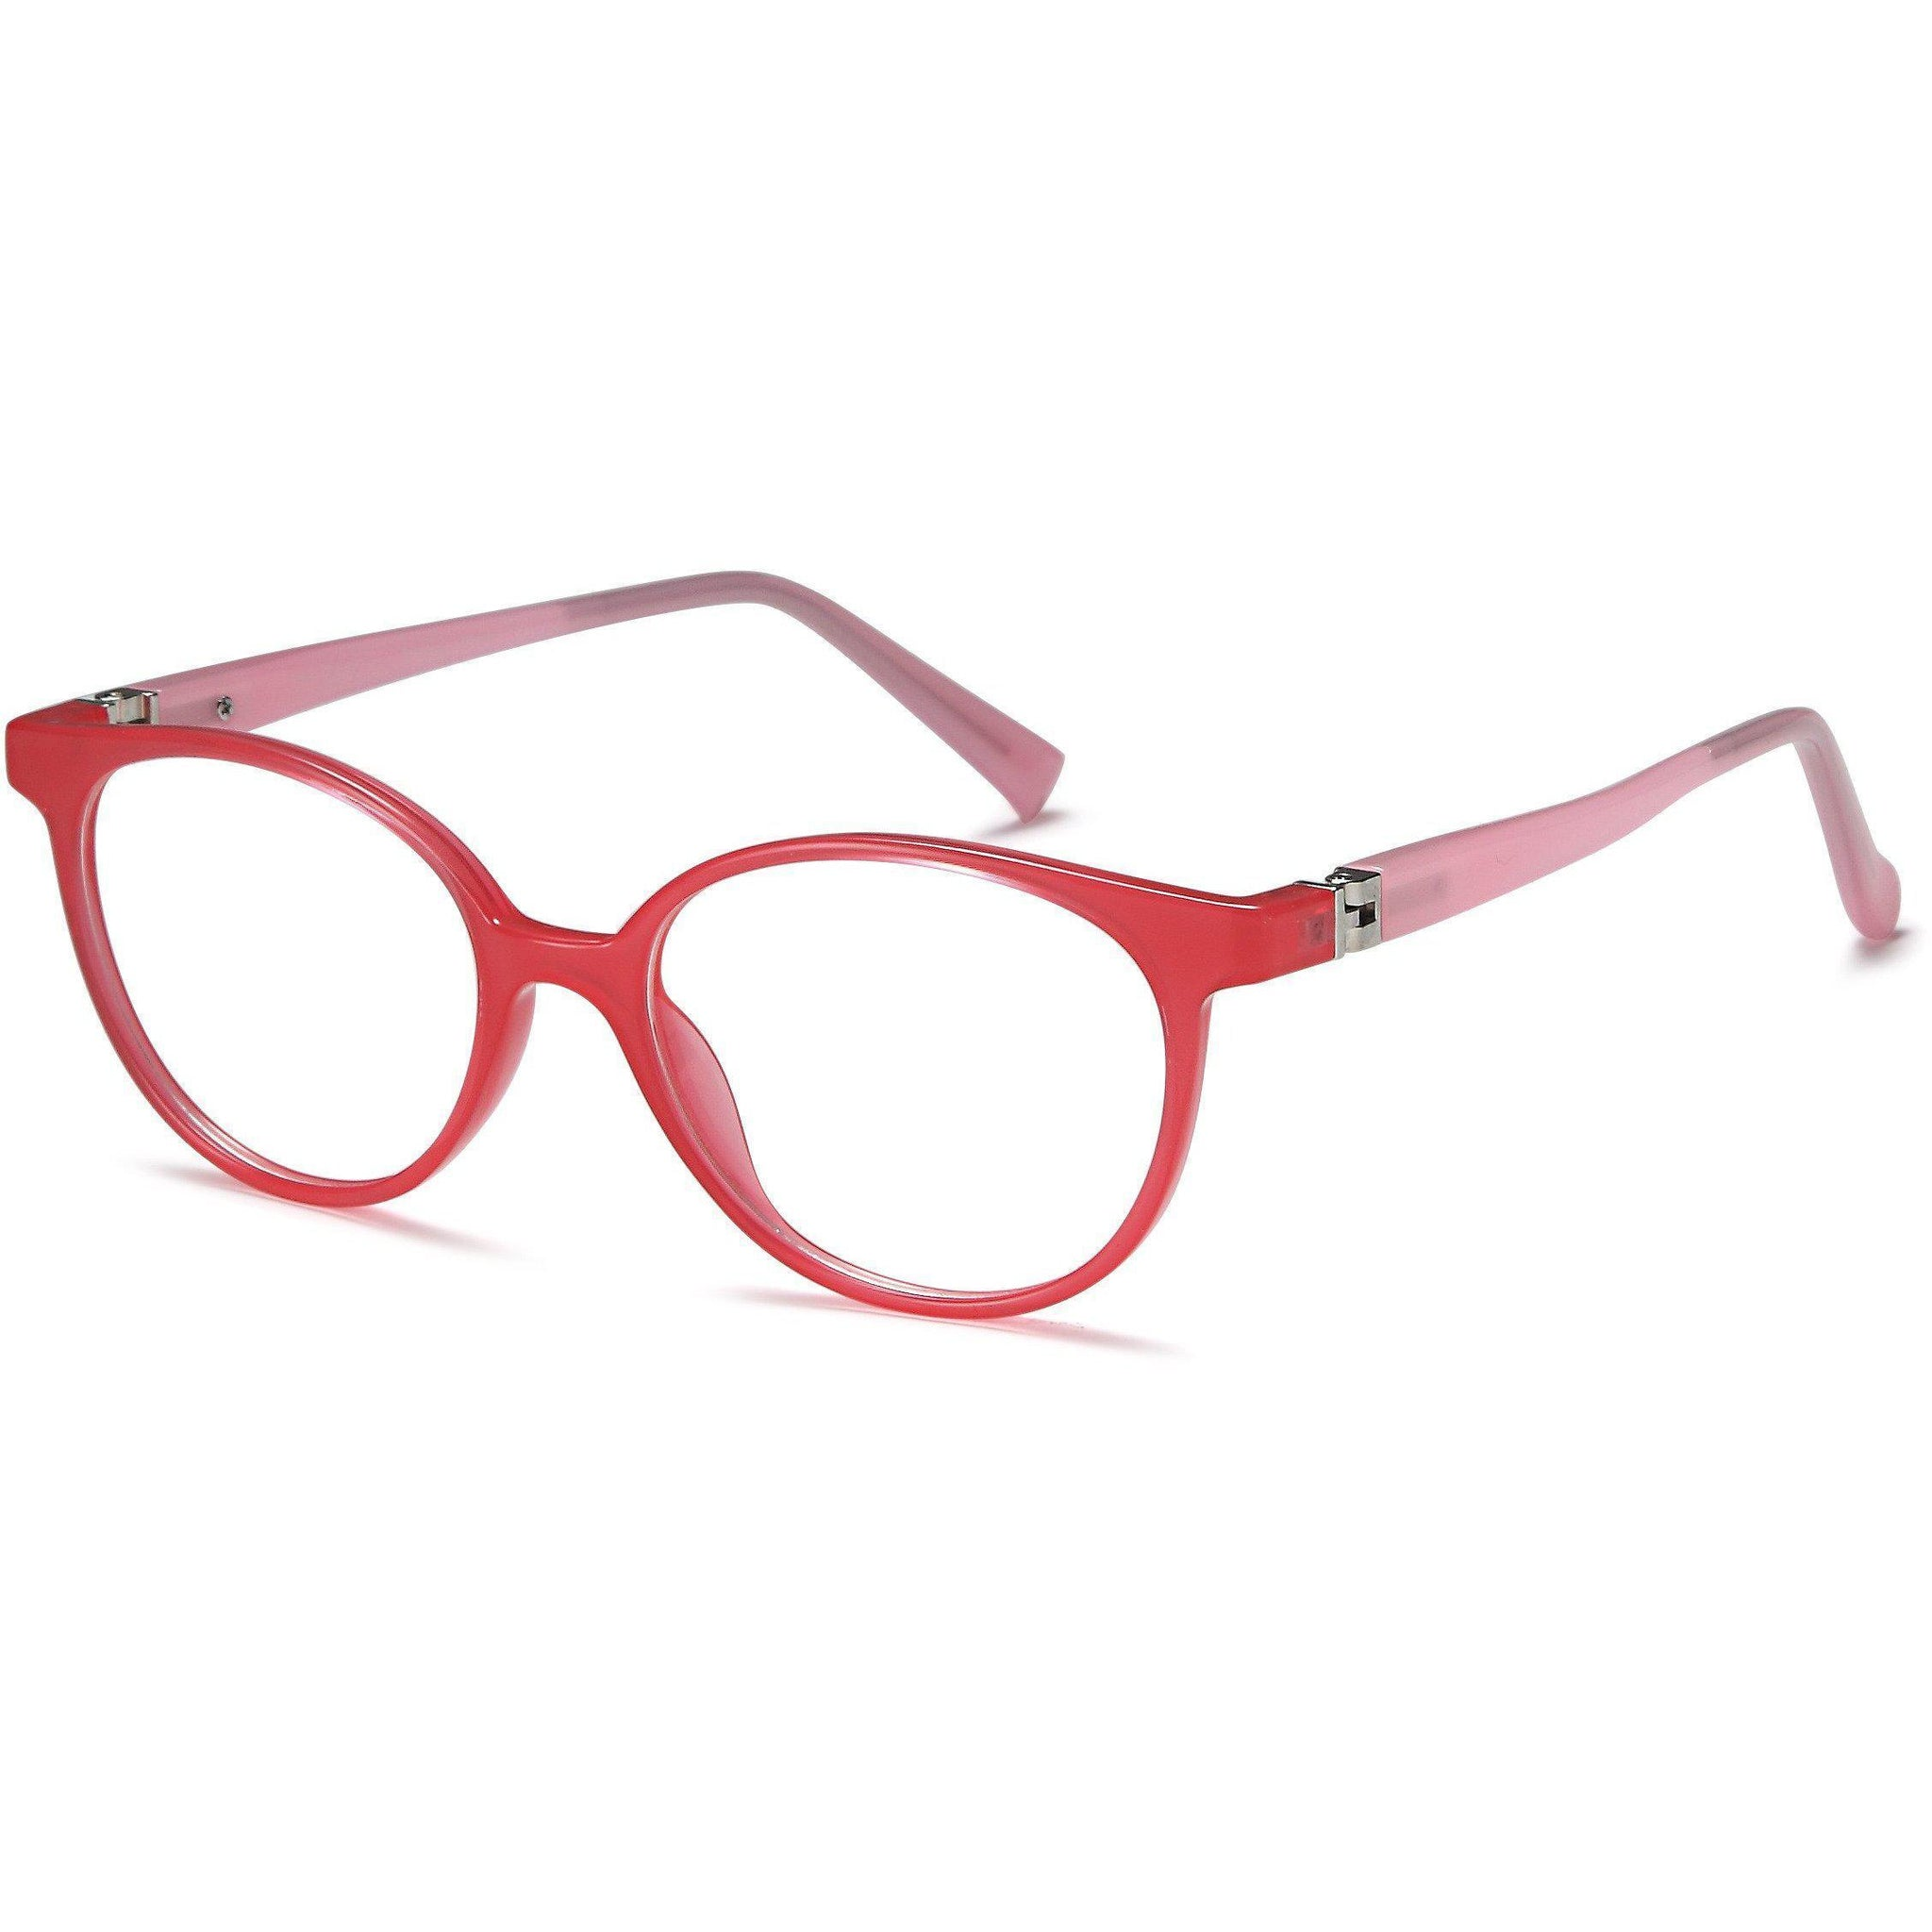 OnTrend Prescription Glasses Emma Eyeglasses Frames